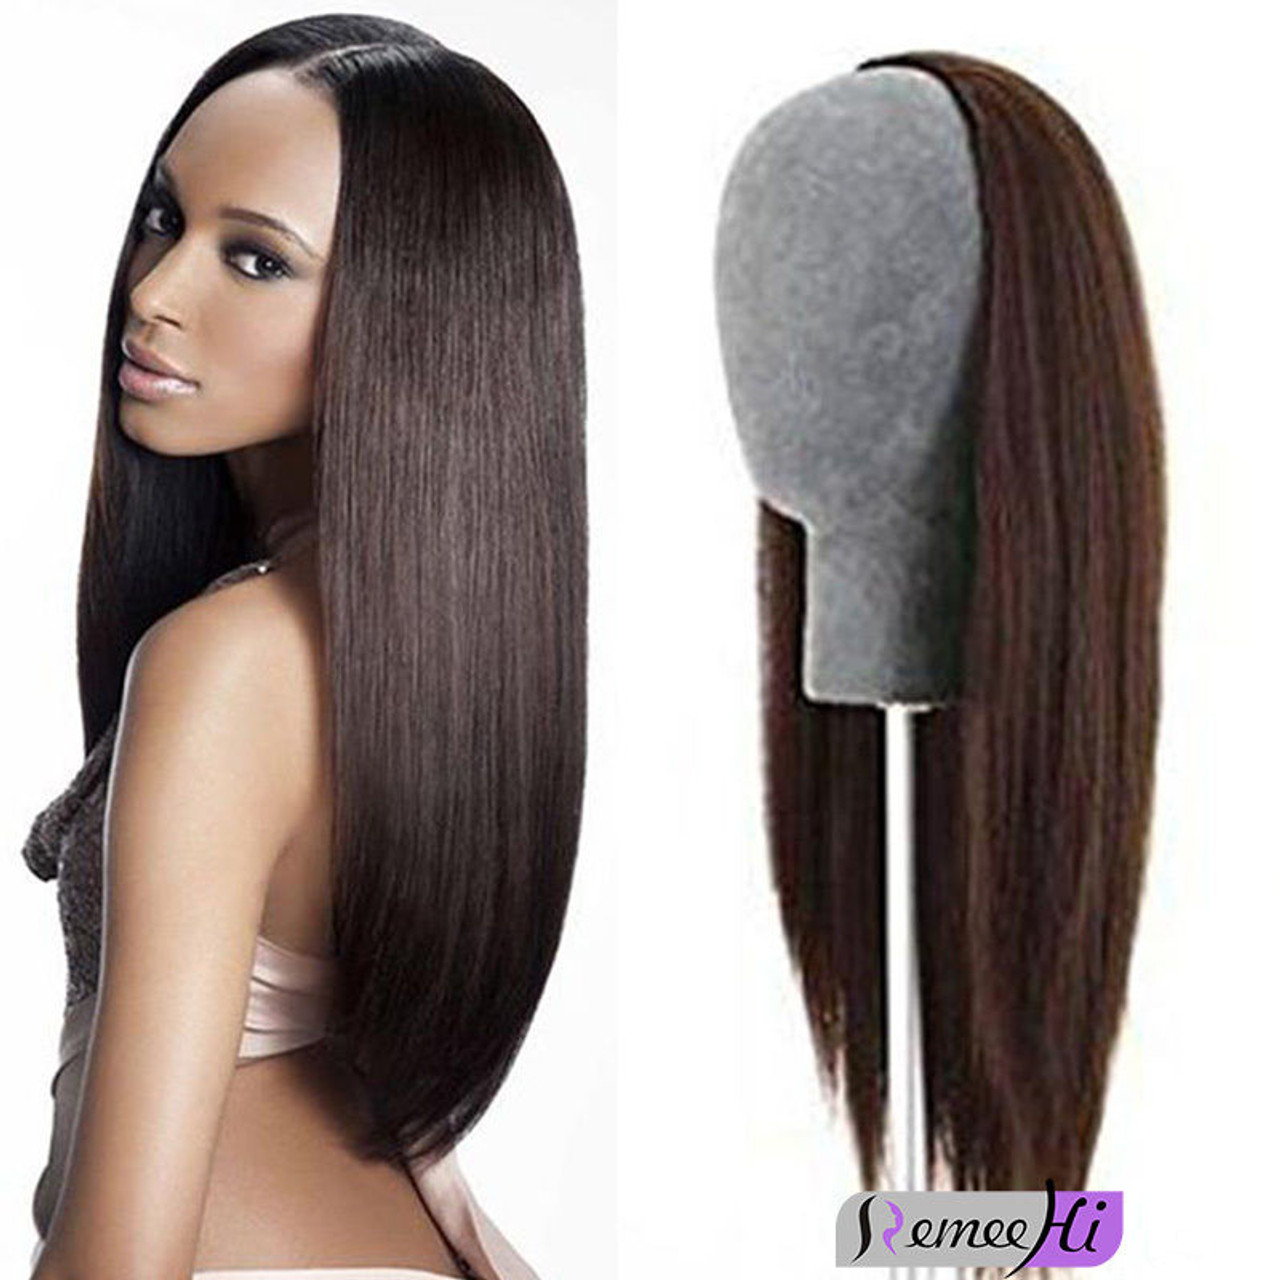 Remeehi Straight Half Wig Clip In Human Hair Extension